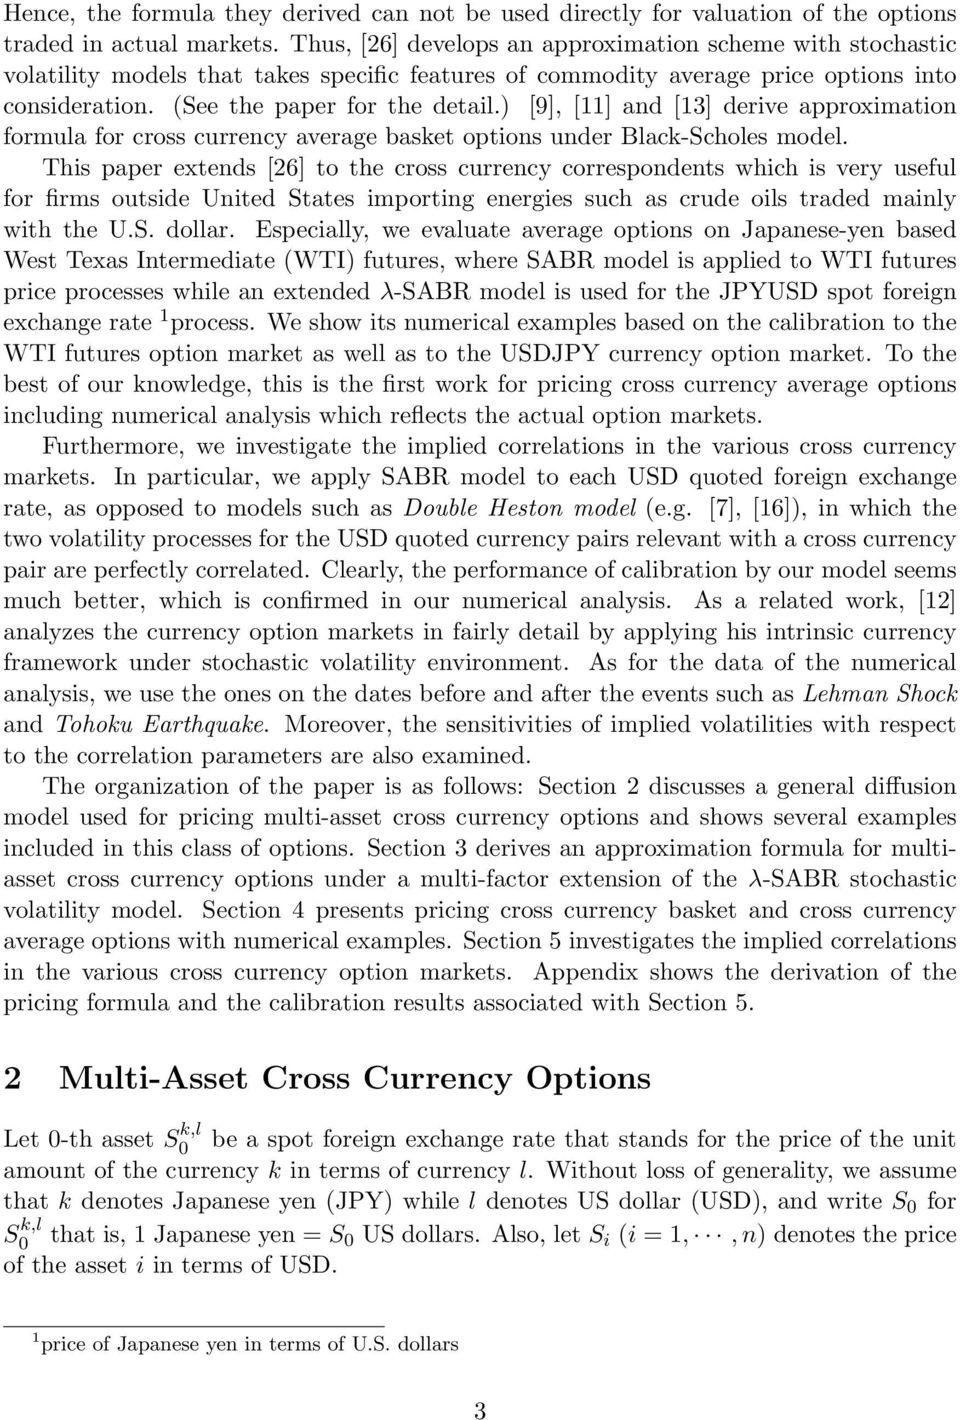 Ths paper extends [26] to the cross currency correspondents whch s very useful for frms outsde Unted States mportng energes such as crude ols traded manly wth the US dollar Especally, we evaluate